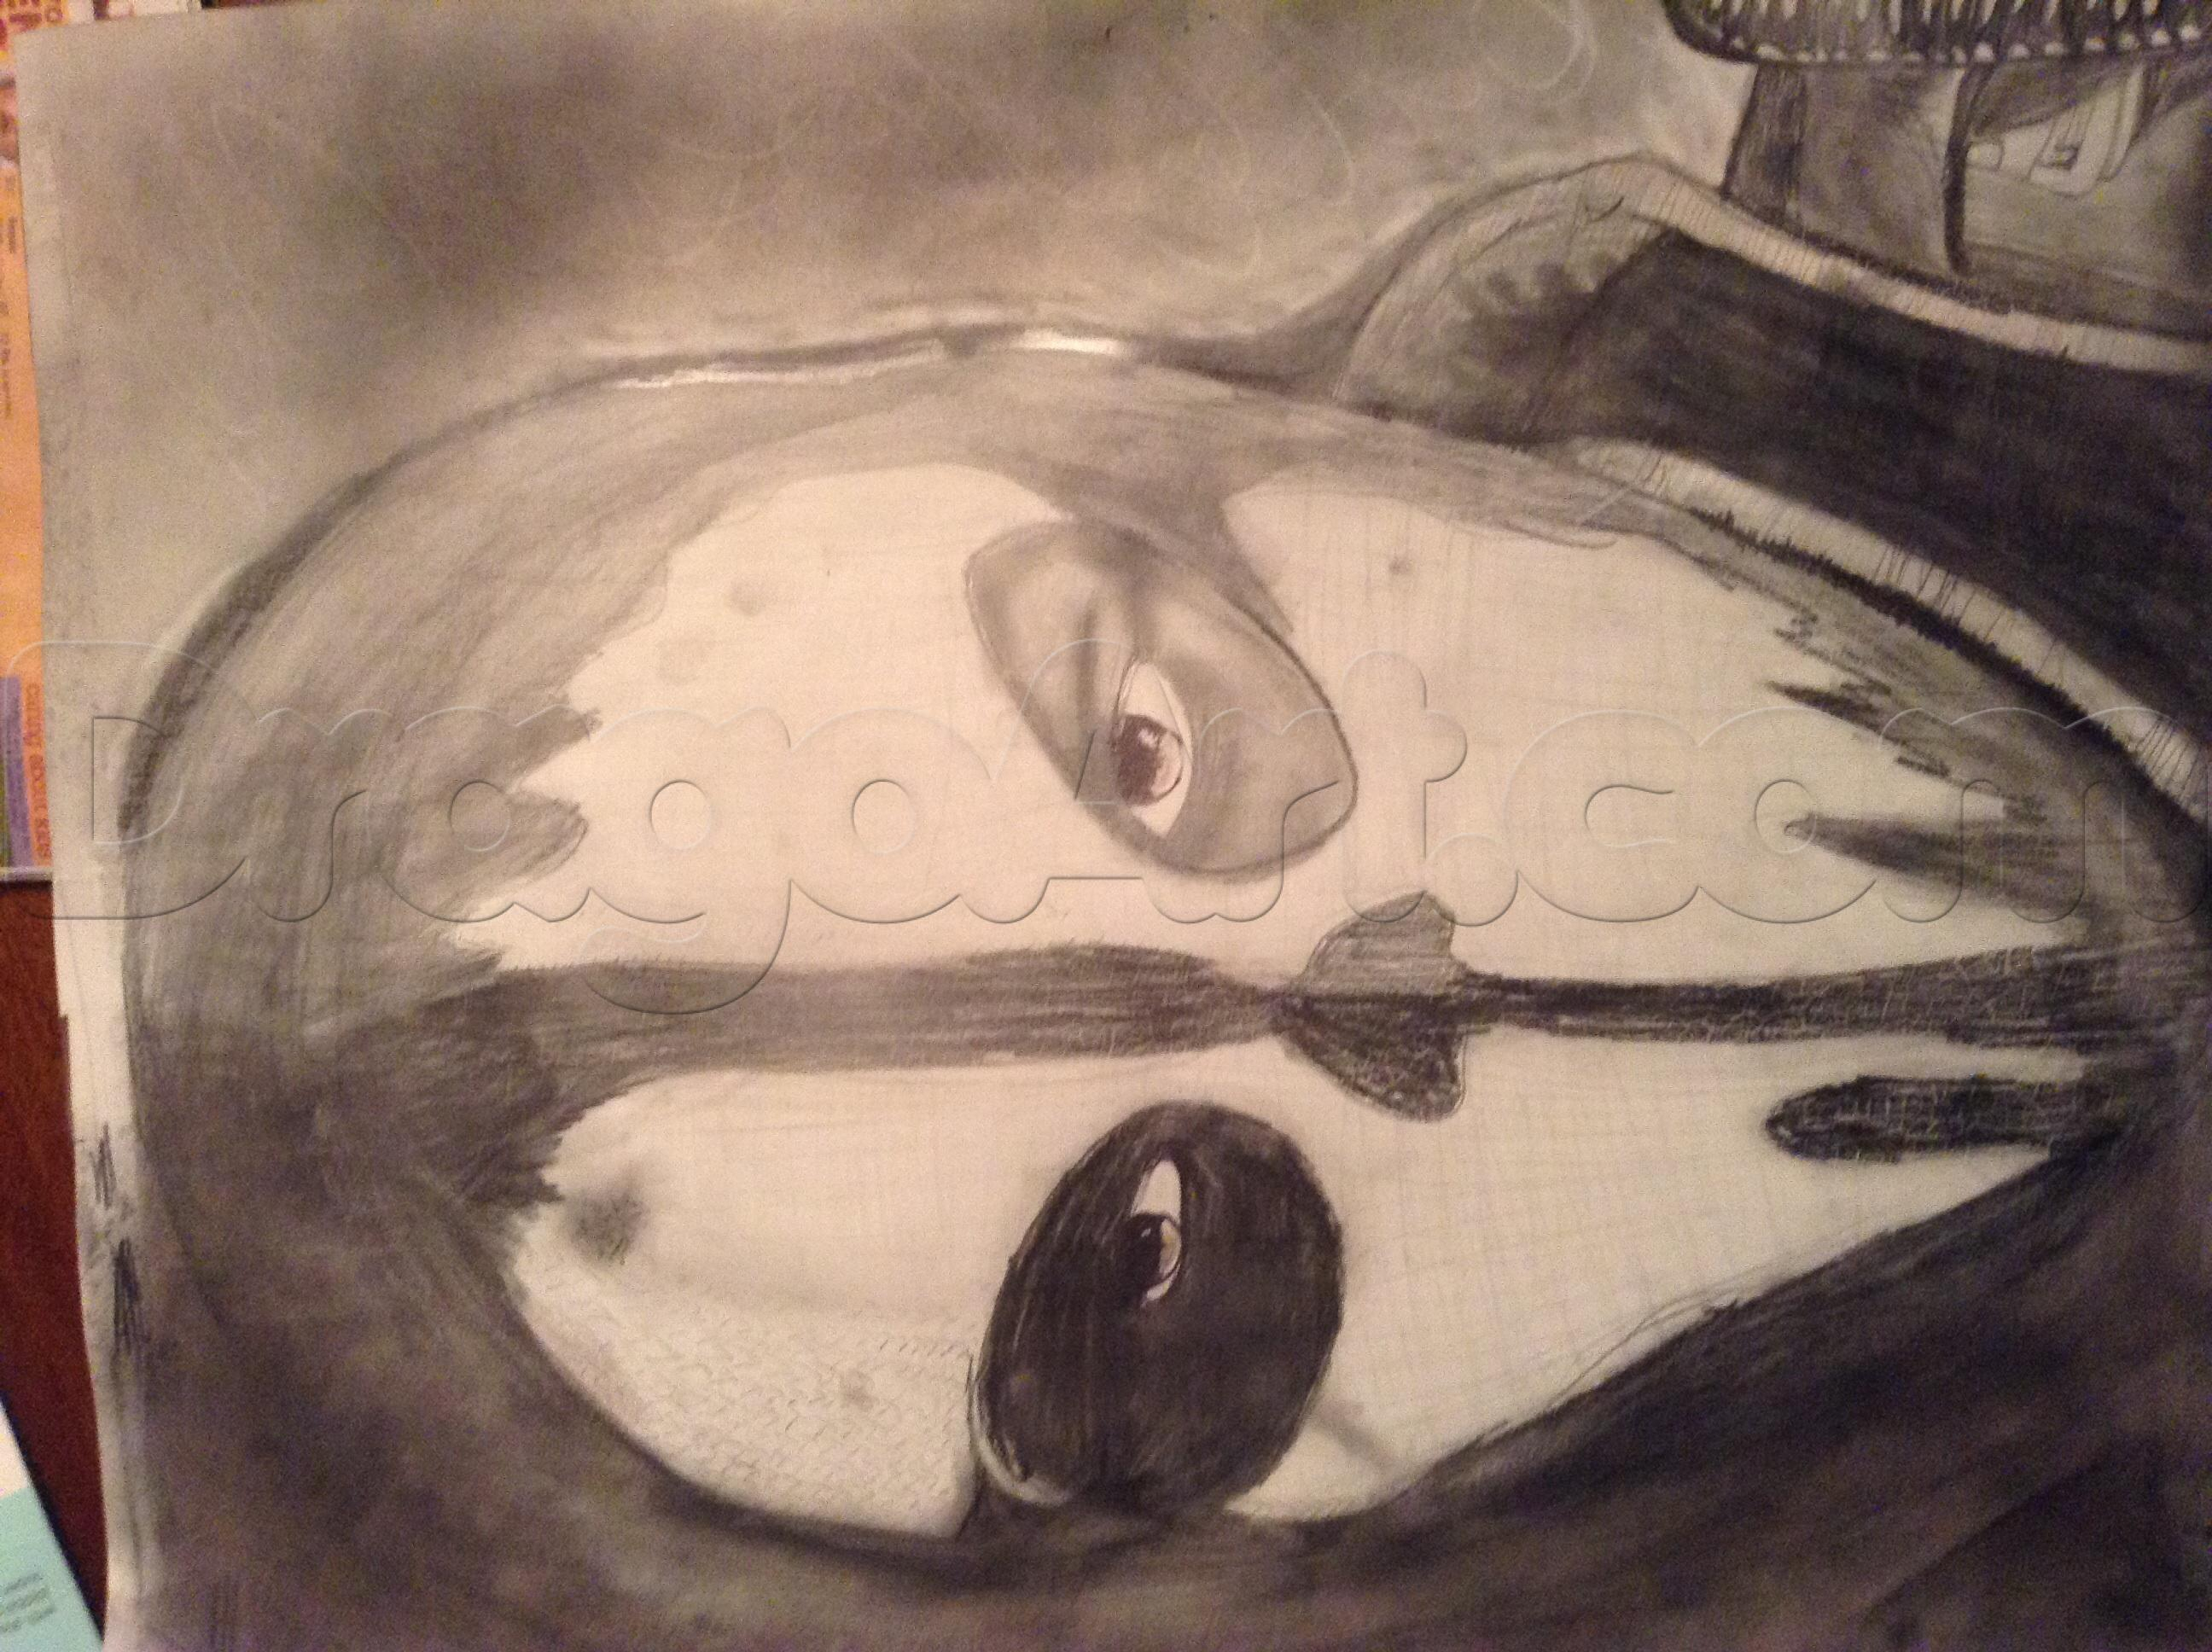 2592x1936 Call Duty Ghosts Drawing 12. How To Draw Logan Walker Call